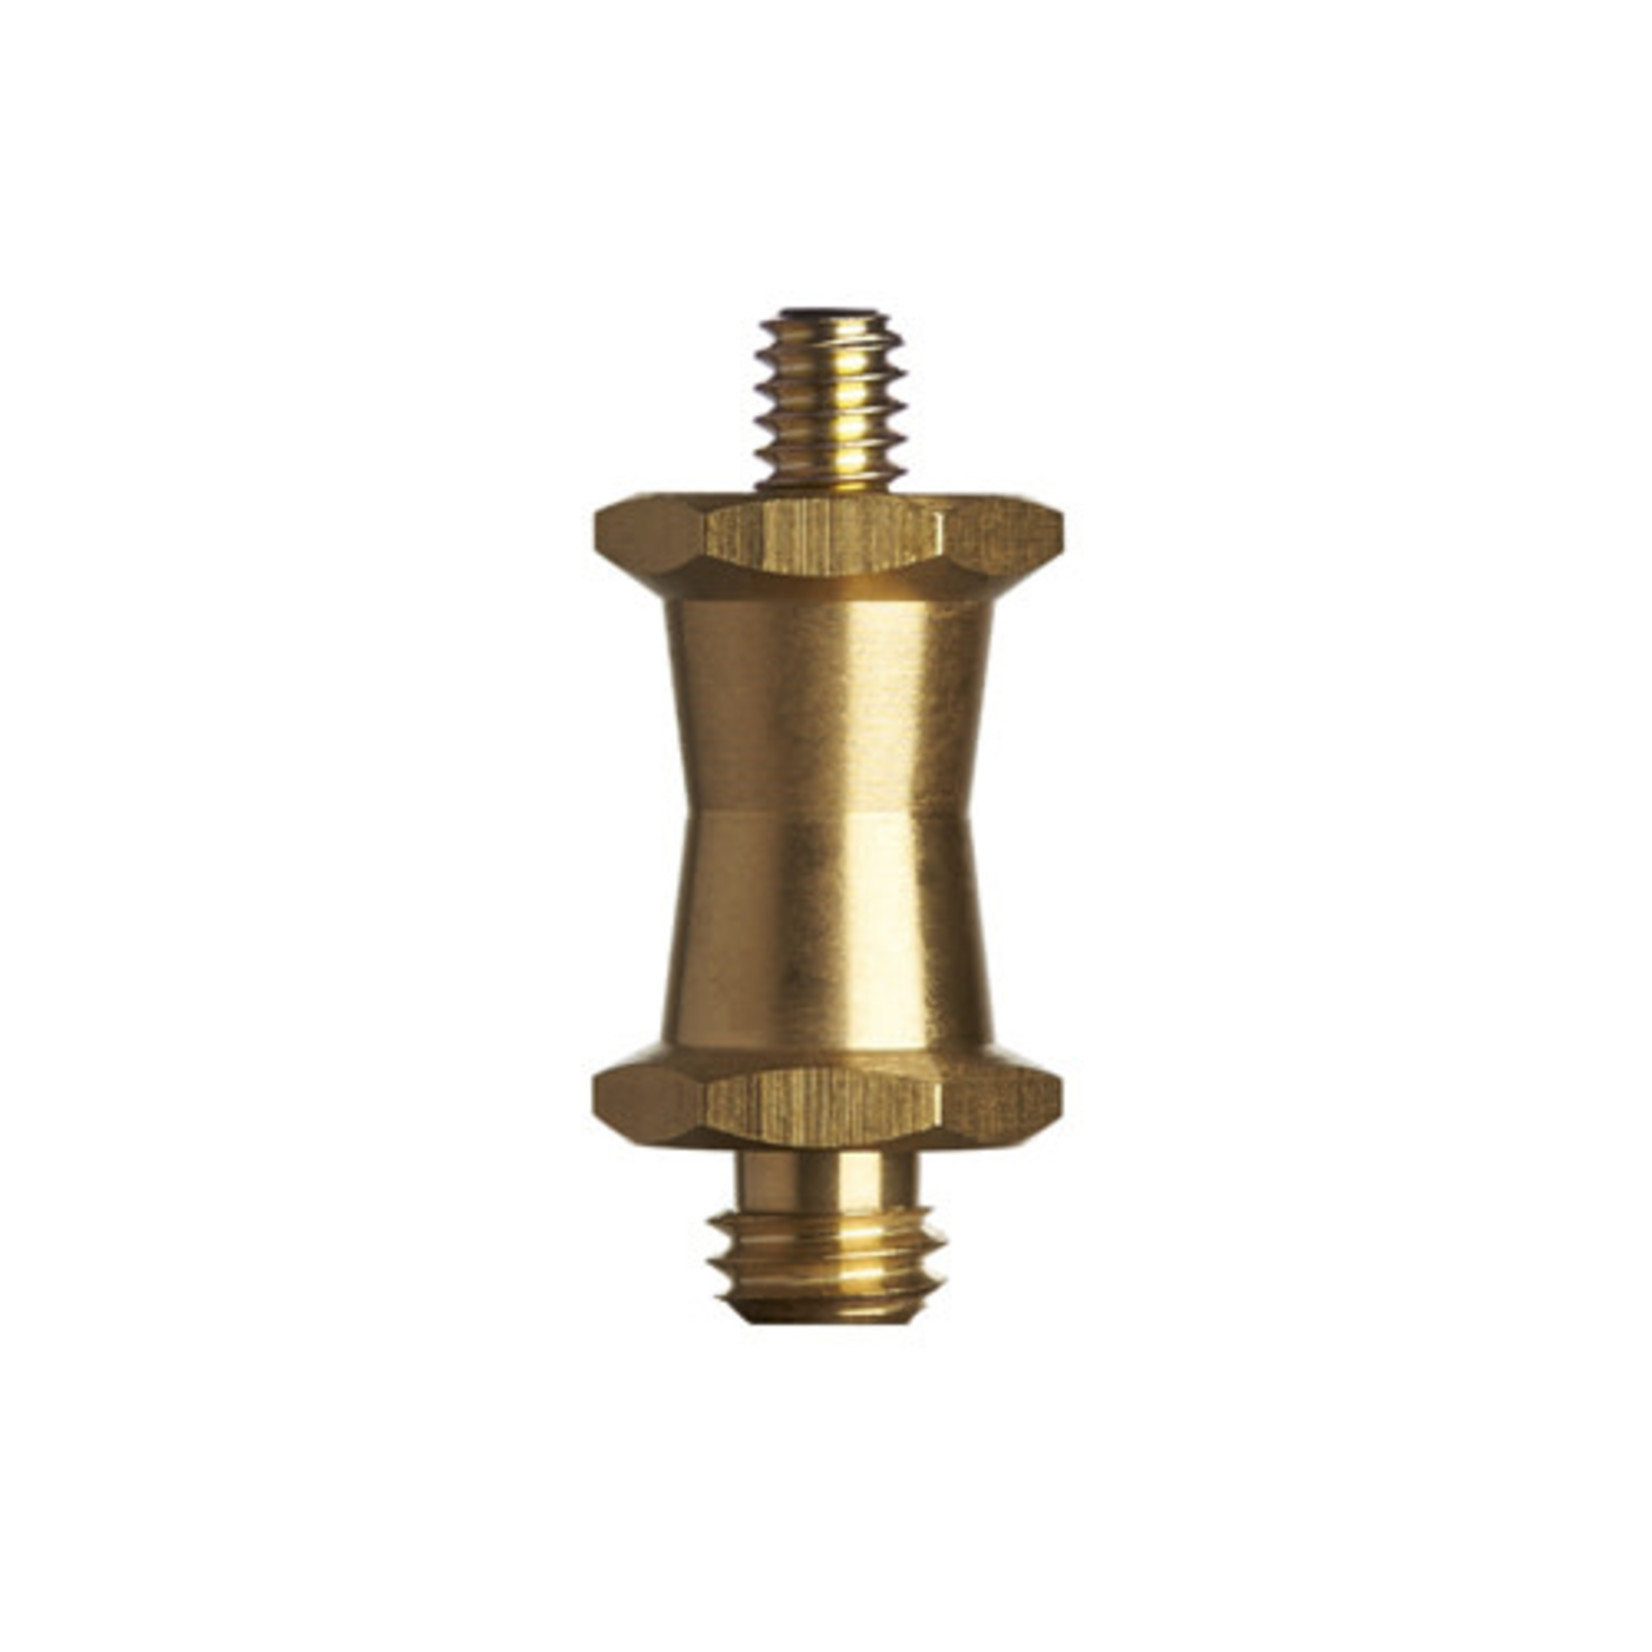 ProMaster Short Brass Stud 1/4-20 male to 3/8 male